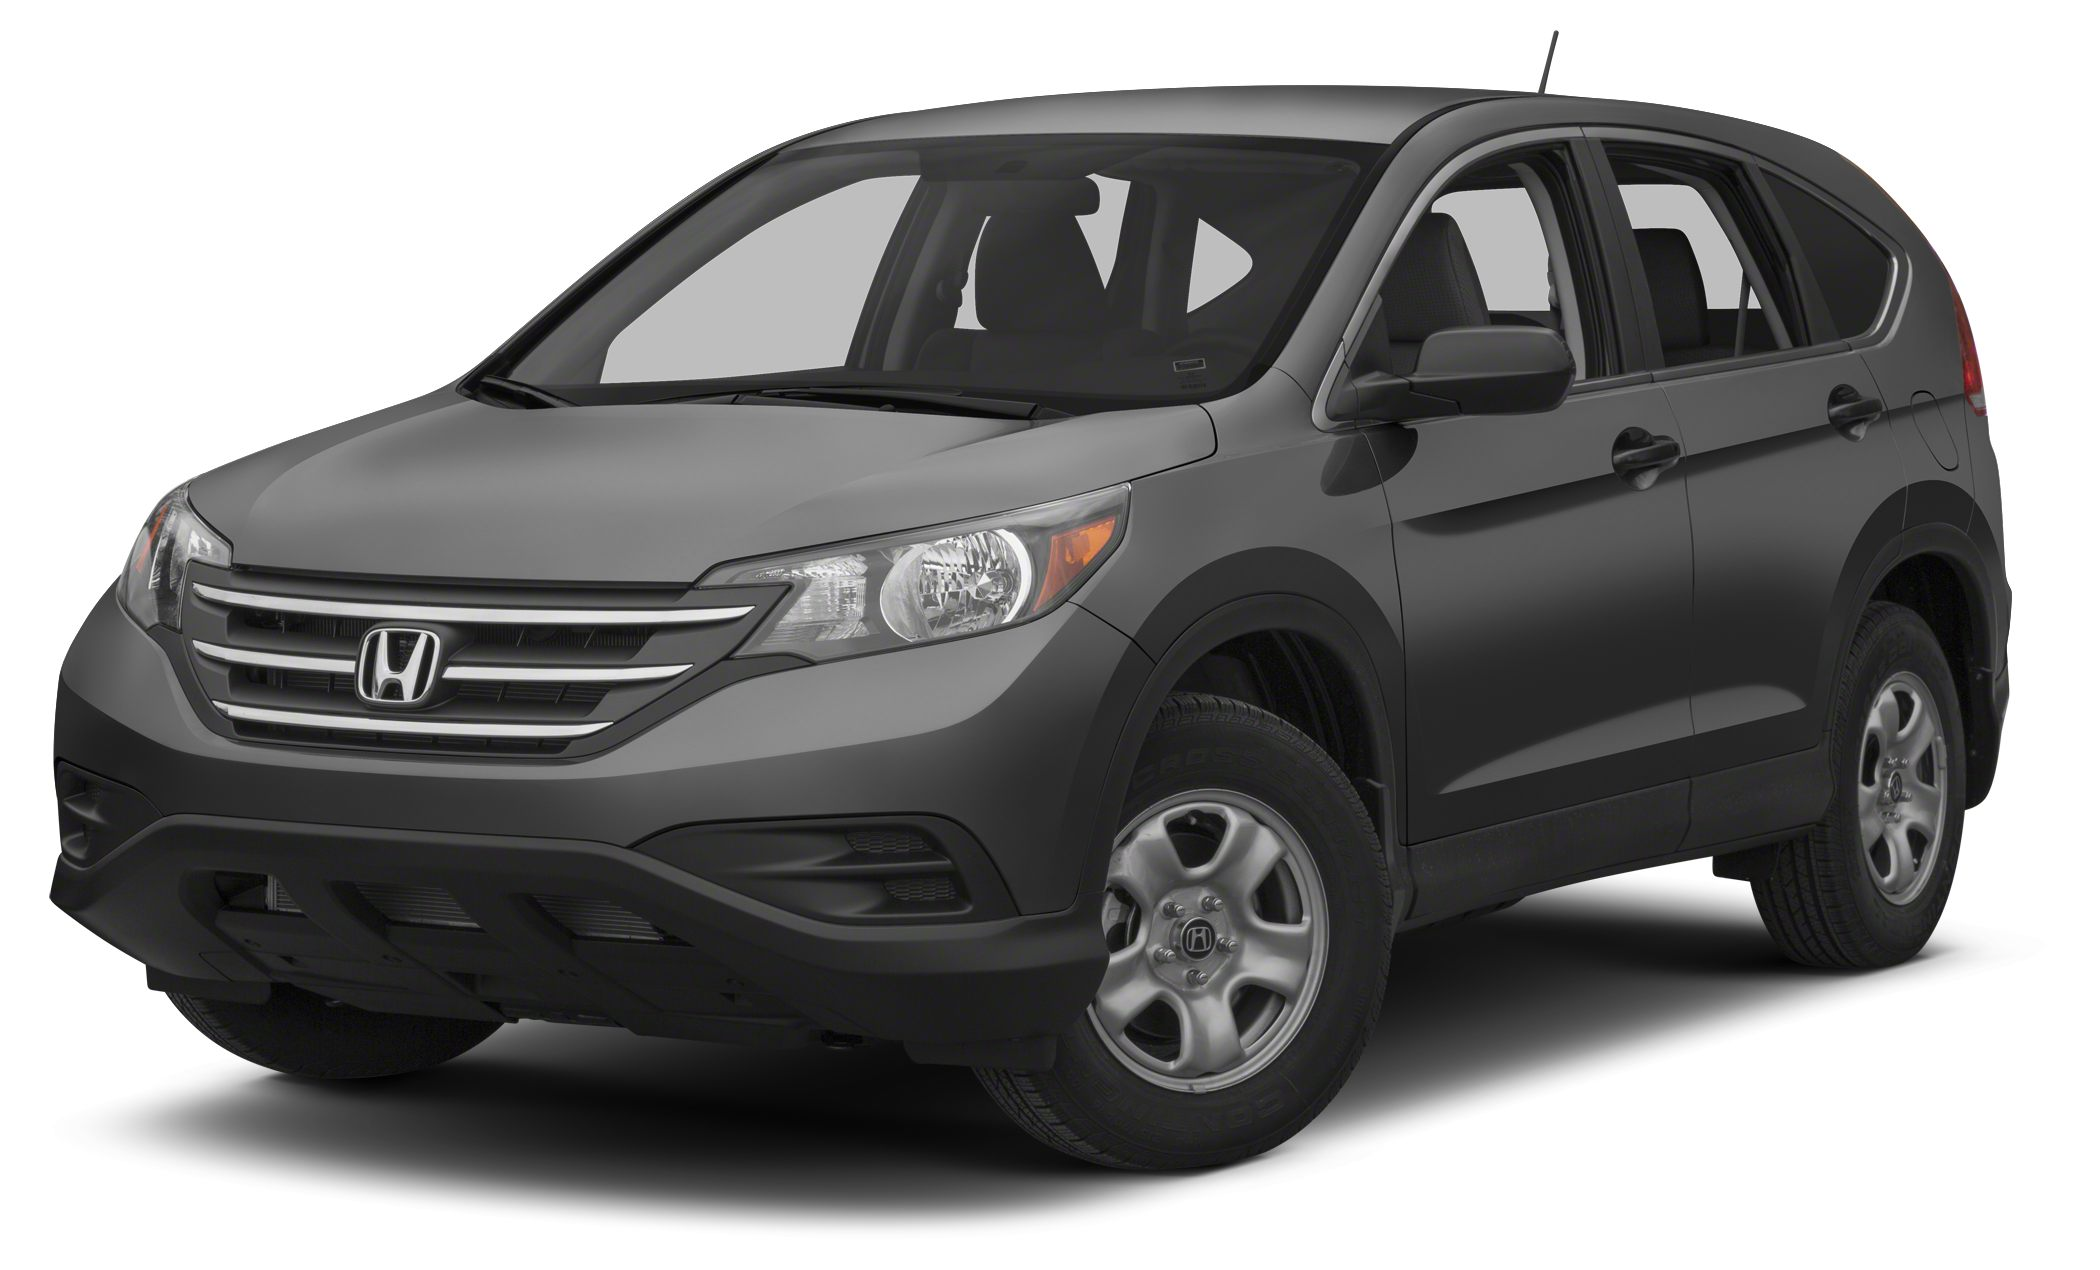 2013 Honda CR-V LX AWD Alabaster Silver Metallic on Stone Gray interior Bluetooth Reverse Cam